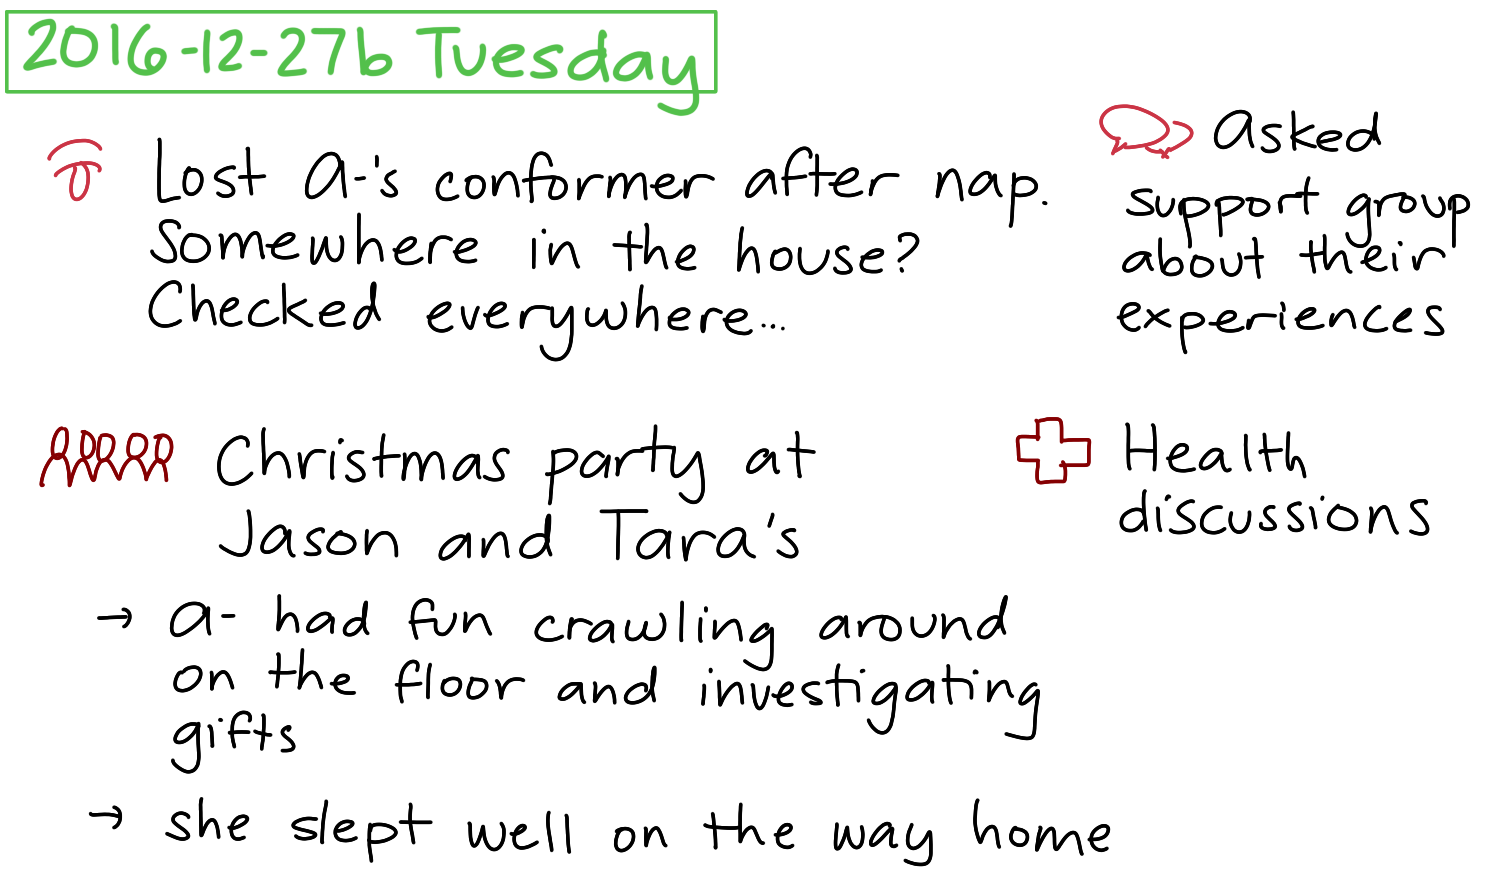 2016-12-27b Tuesday #daily #journal.png